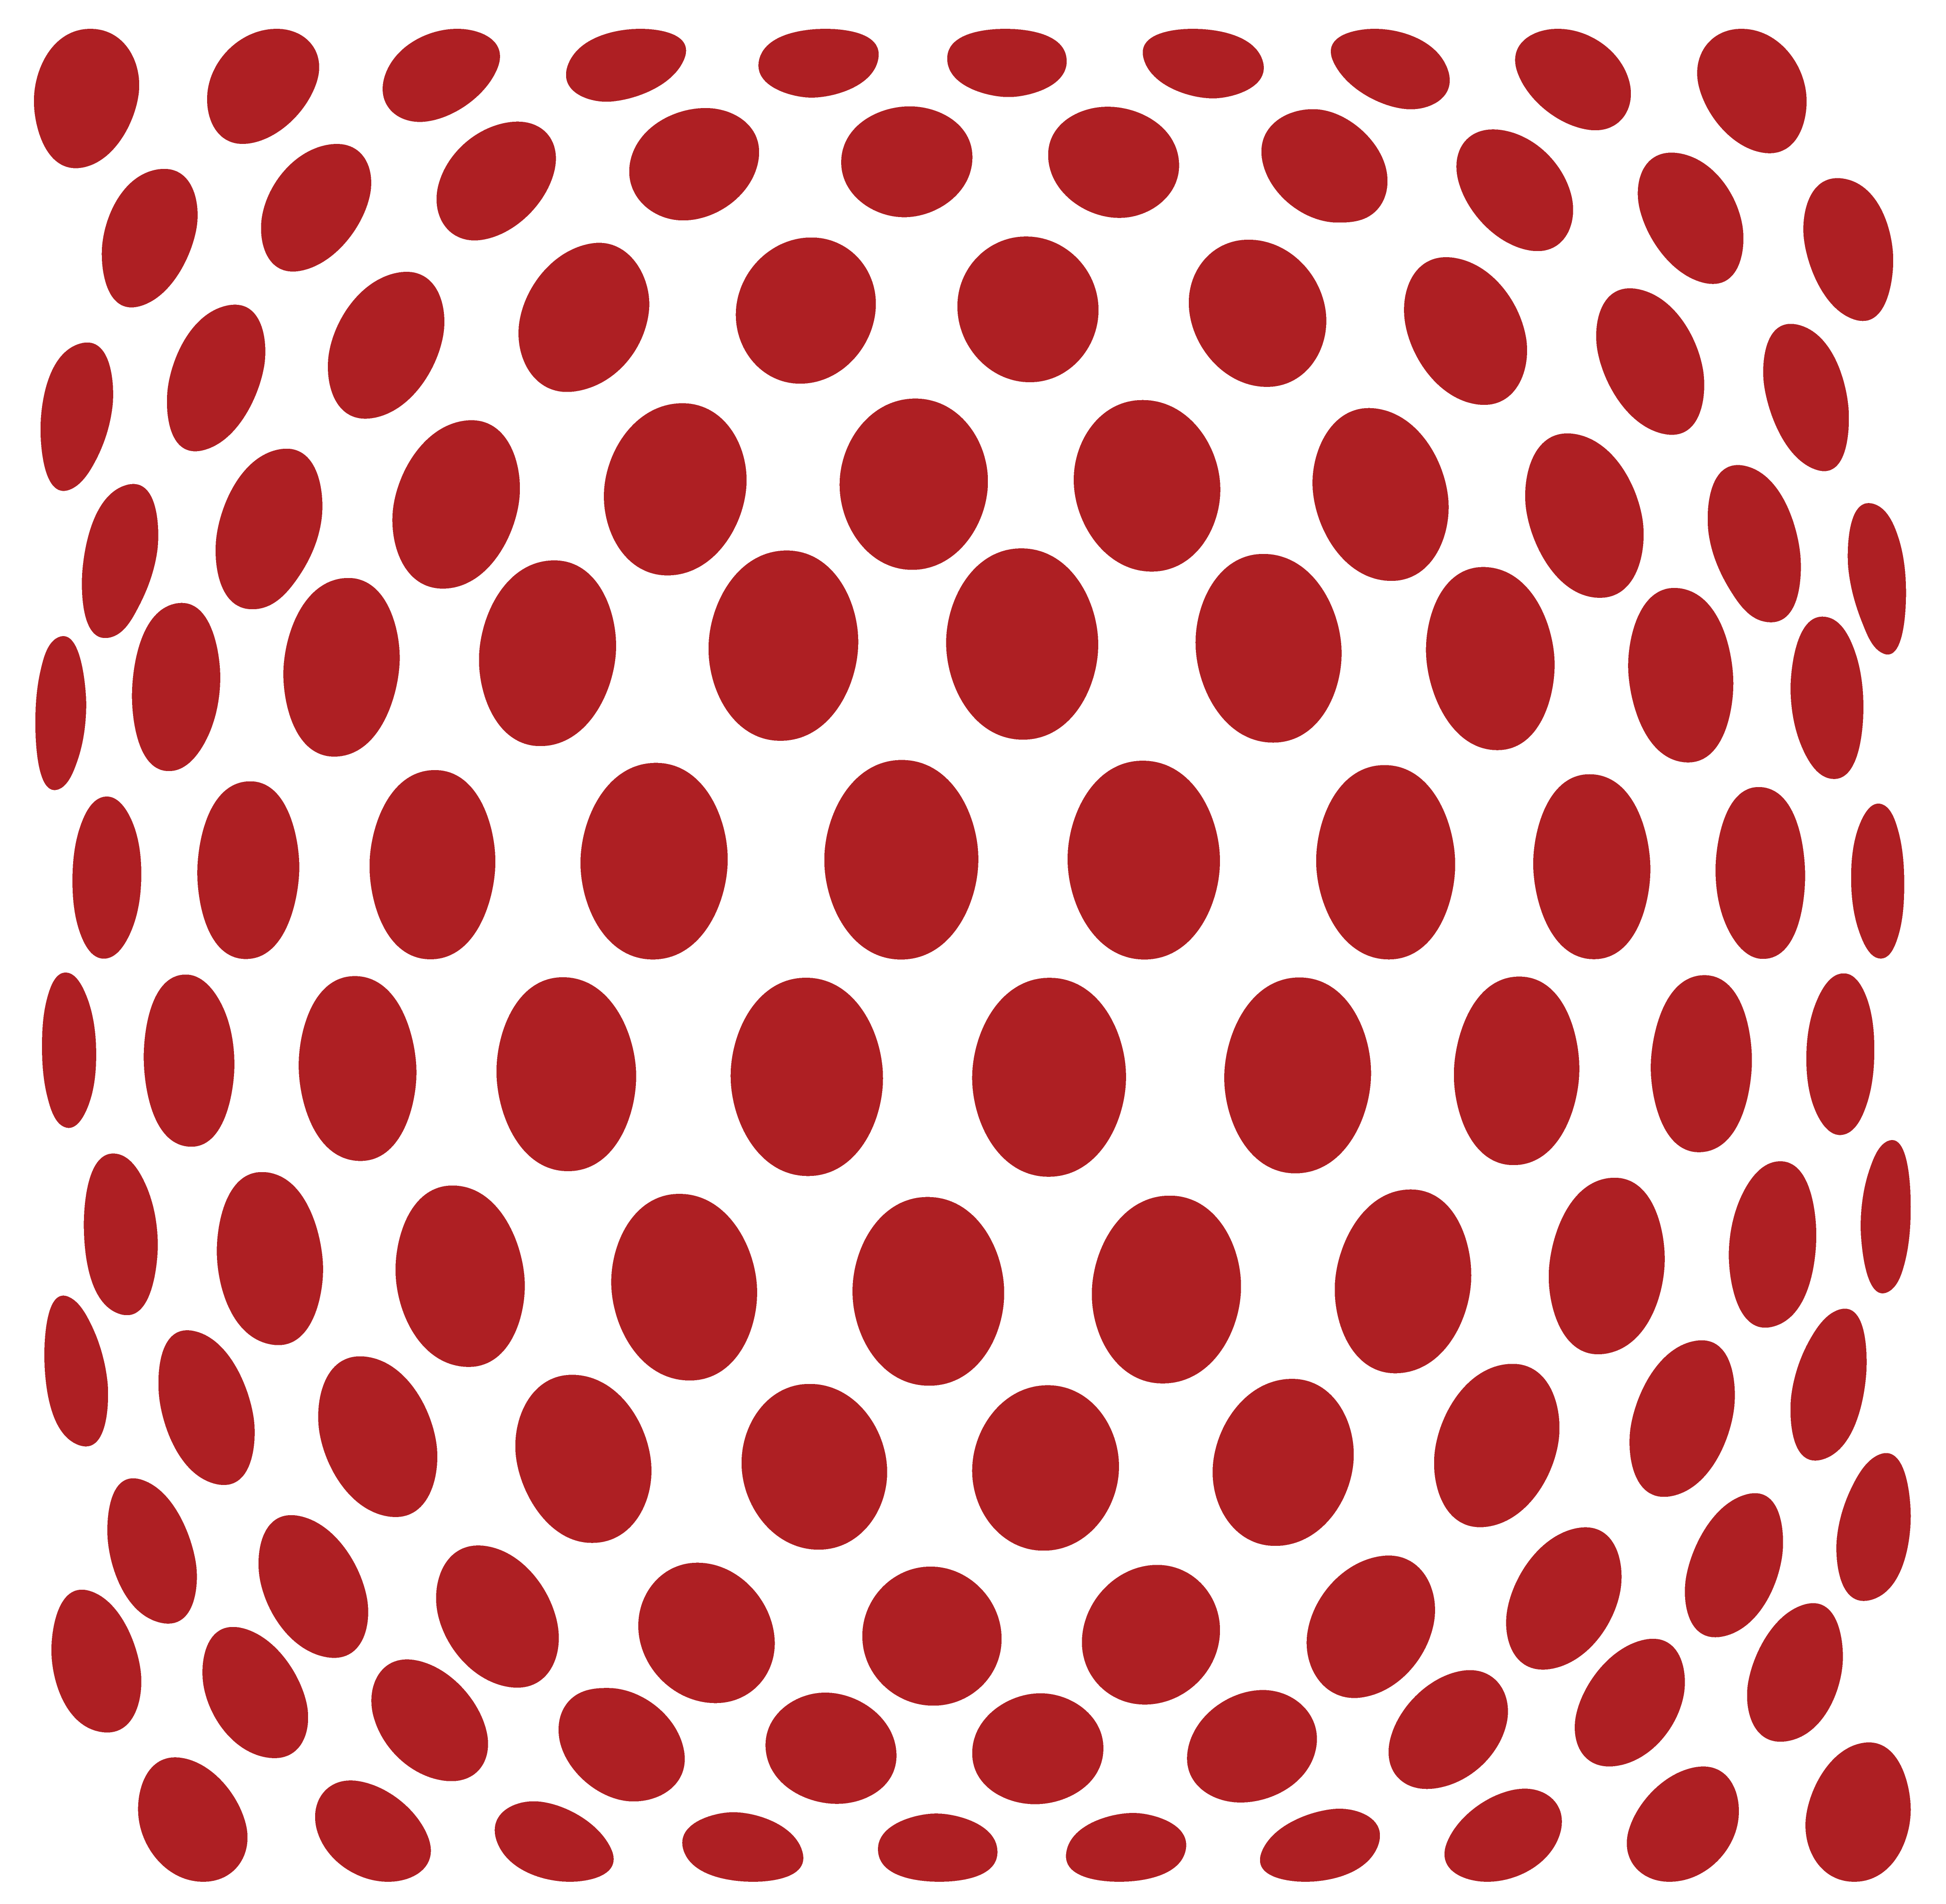 Red polka dots png. Free photo graphic download